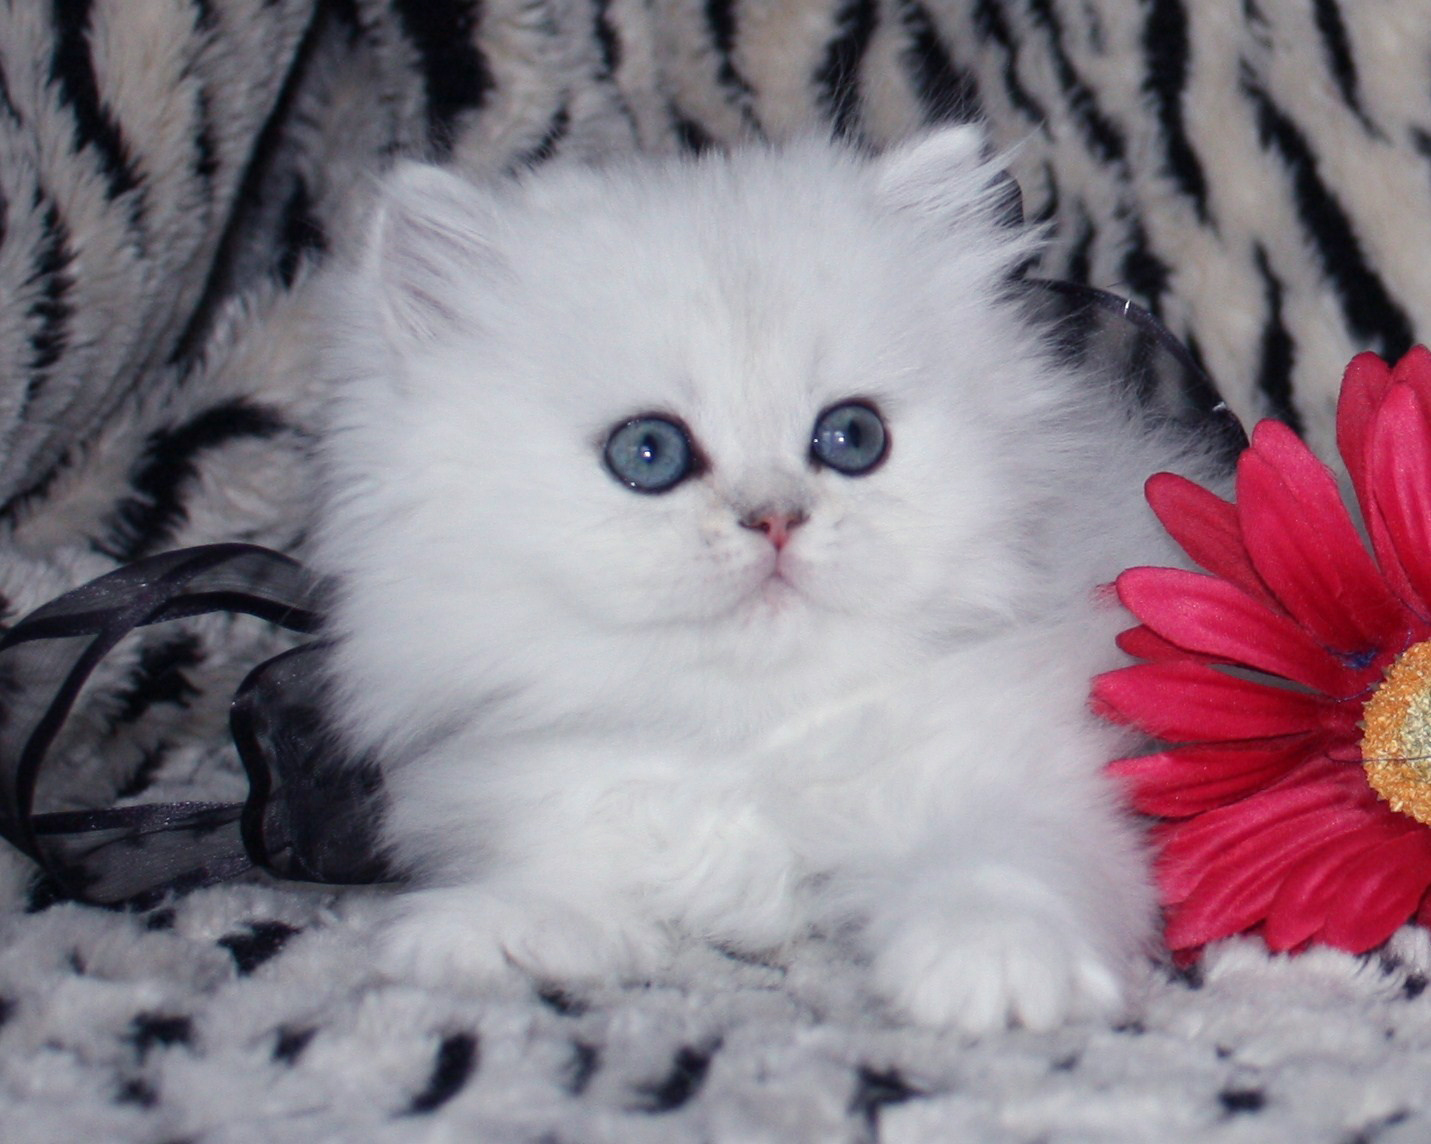 Persian himalayan kittens for sale indiana – The best breed of